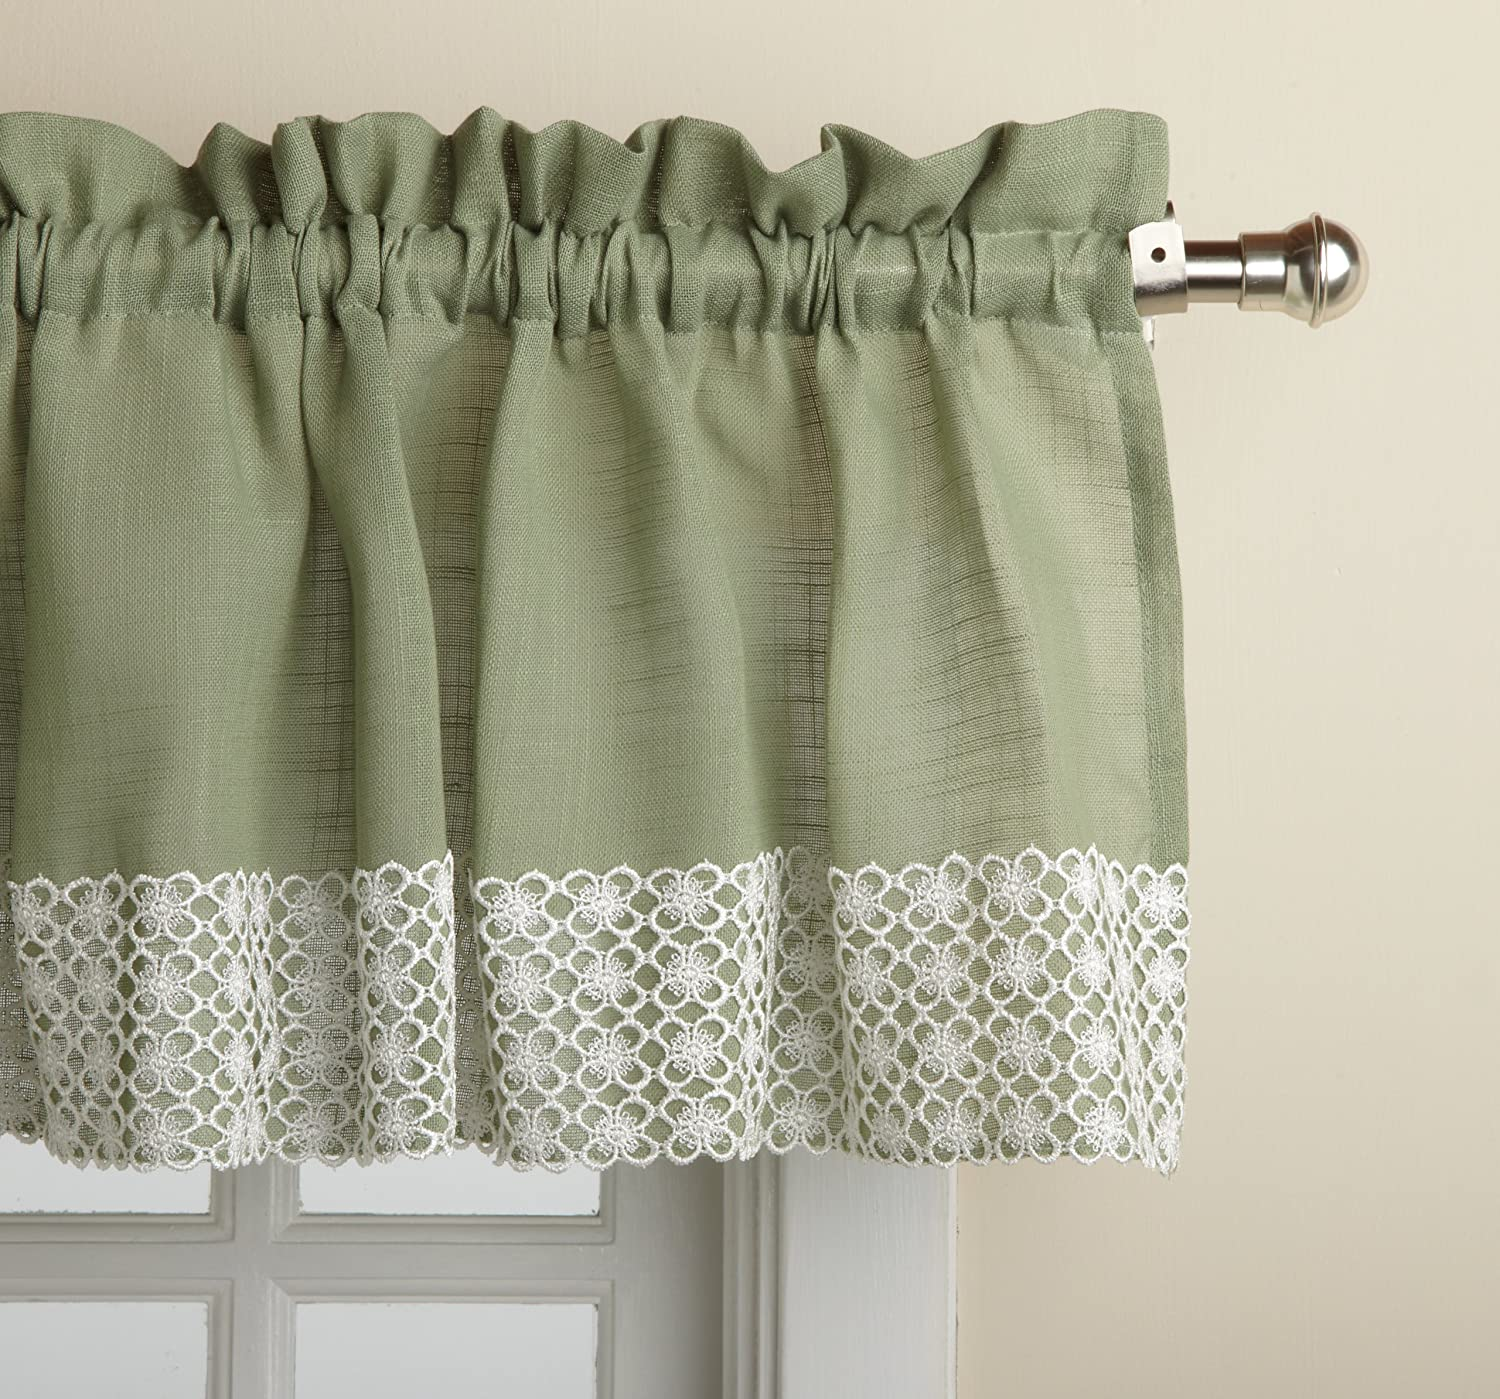 kitchen full curtains walmart online breathtaking forest size of sage custom lime green valance valances at cheap